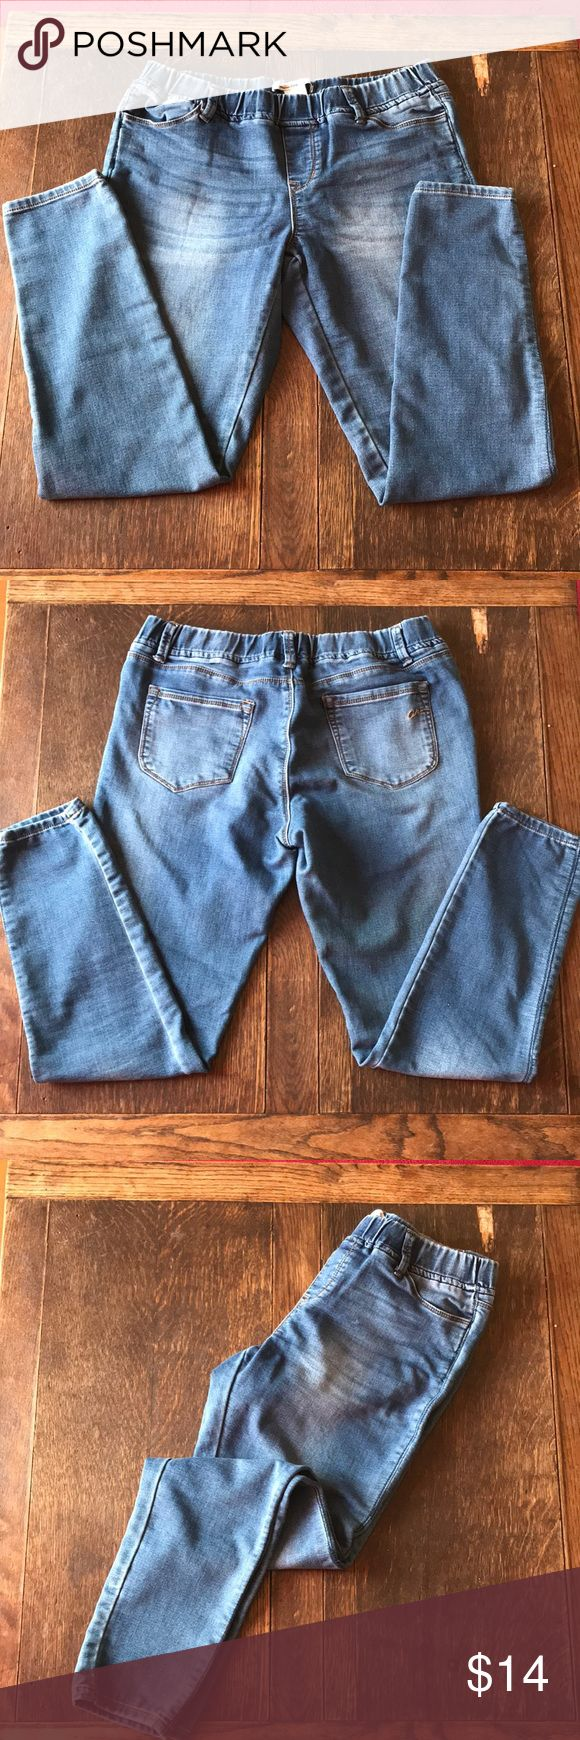 American Rag jegging jeans Medium wash American Rag Jegging with elastic waist. Used, but in great condition. Lots of wear in them yet. Yes, those are actual pockets on the front!!! American Rag Jeans Skinny